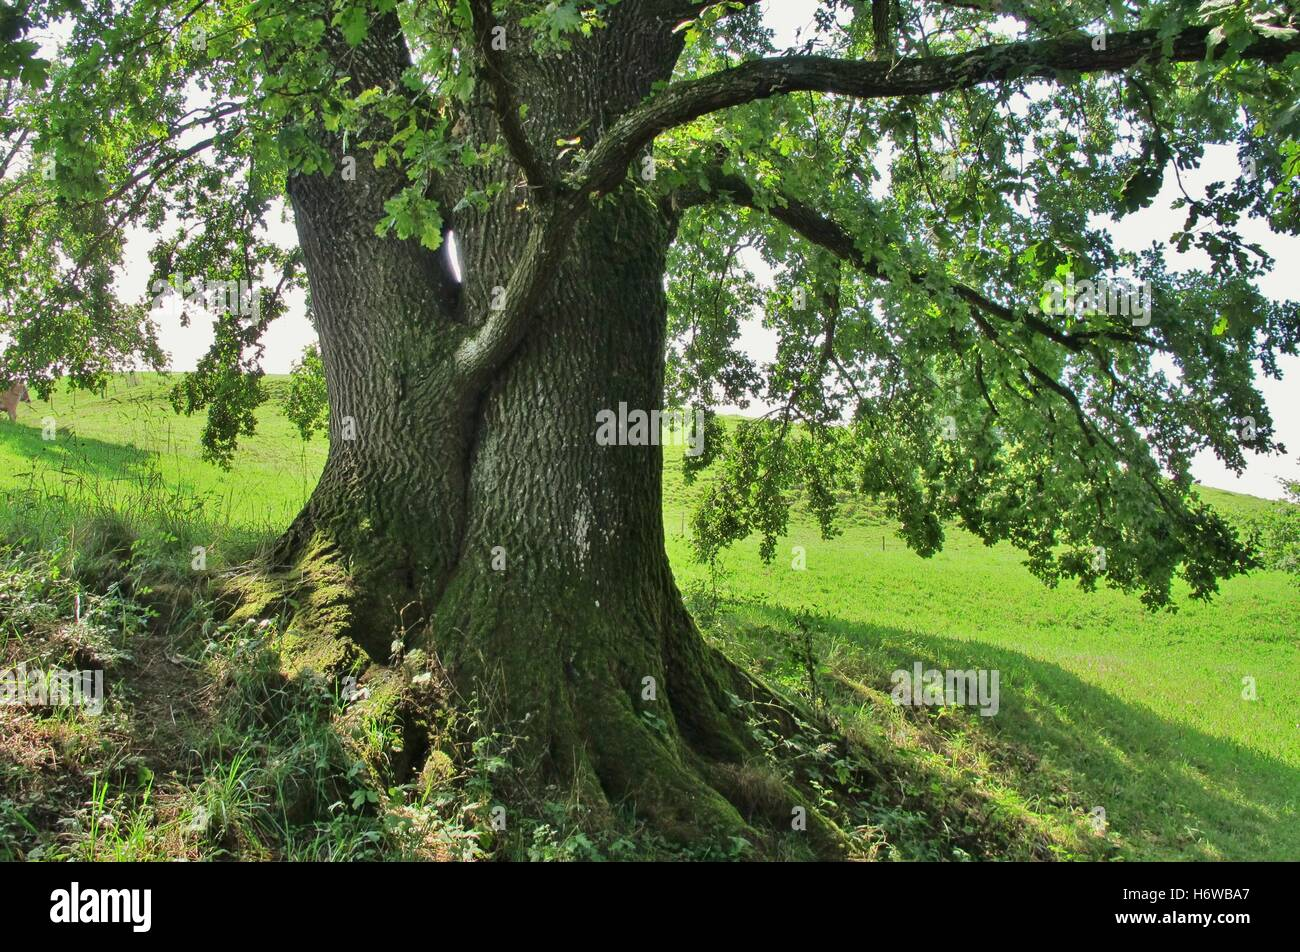 big large enormous extreme powerful imposing immense relevant tree green trunk branches oak old aste schattten - Stock Image